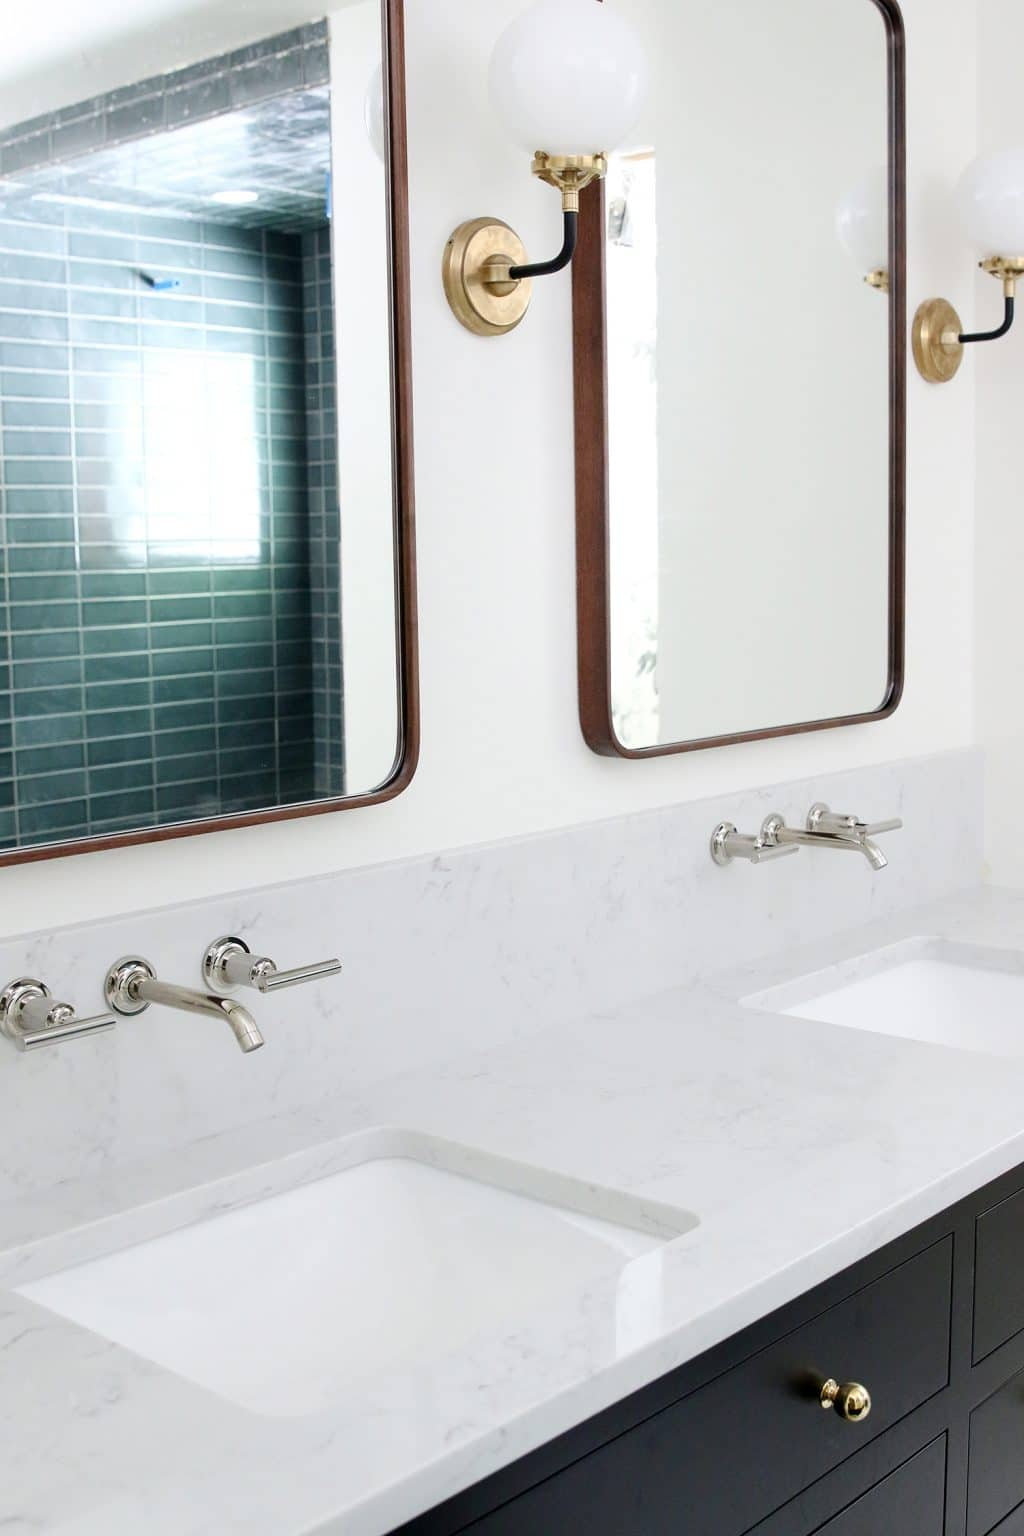 Our Undermount Bathroom Sink Wall Mount Faucets Installed Chris intended for sizing 1024 X 1536